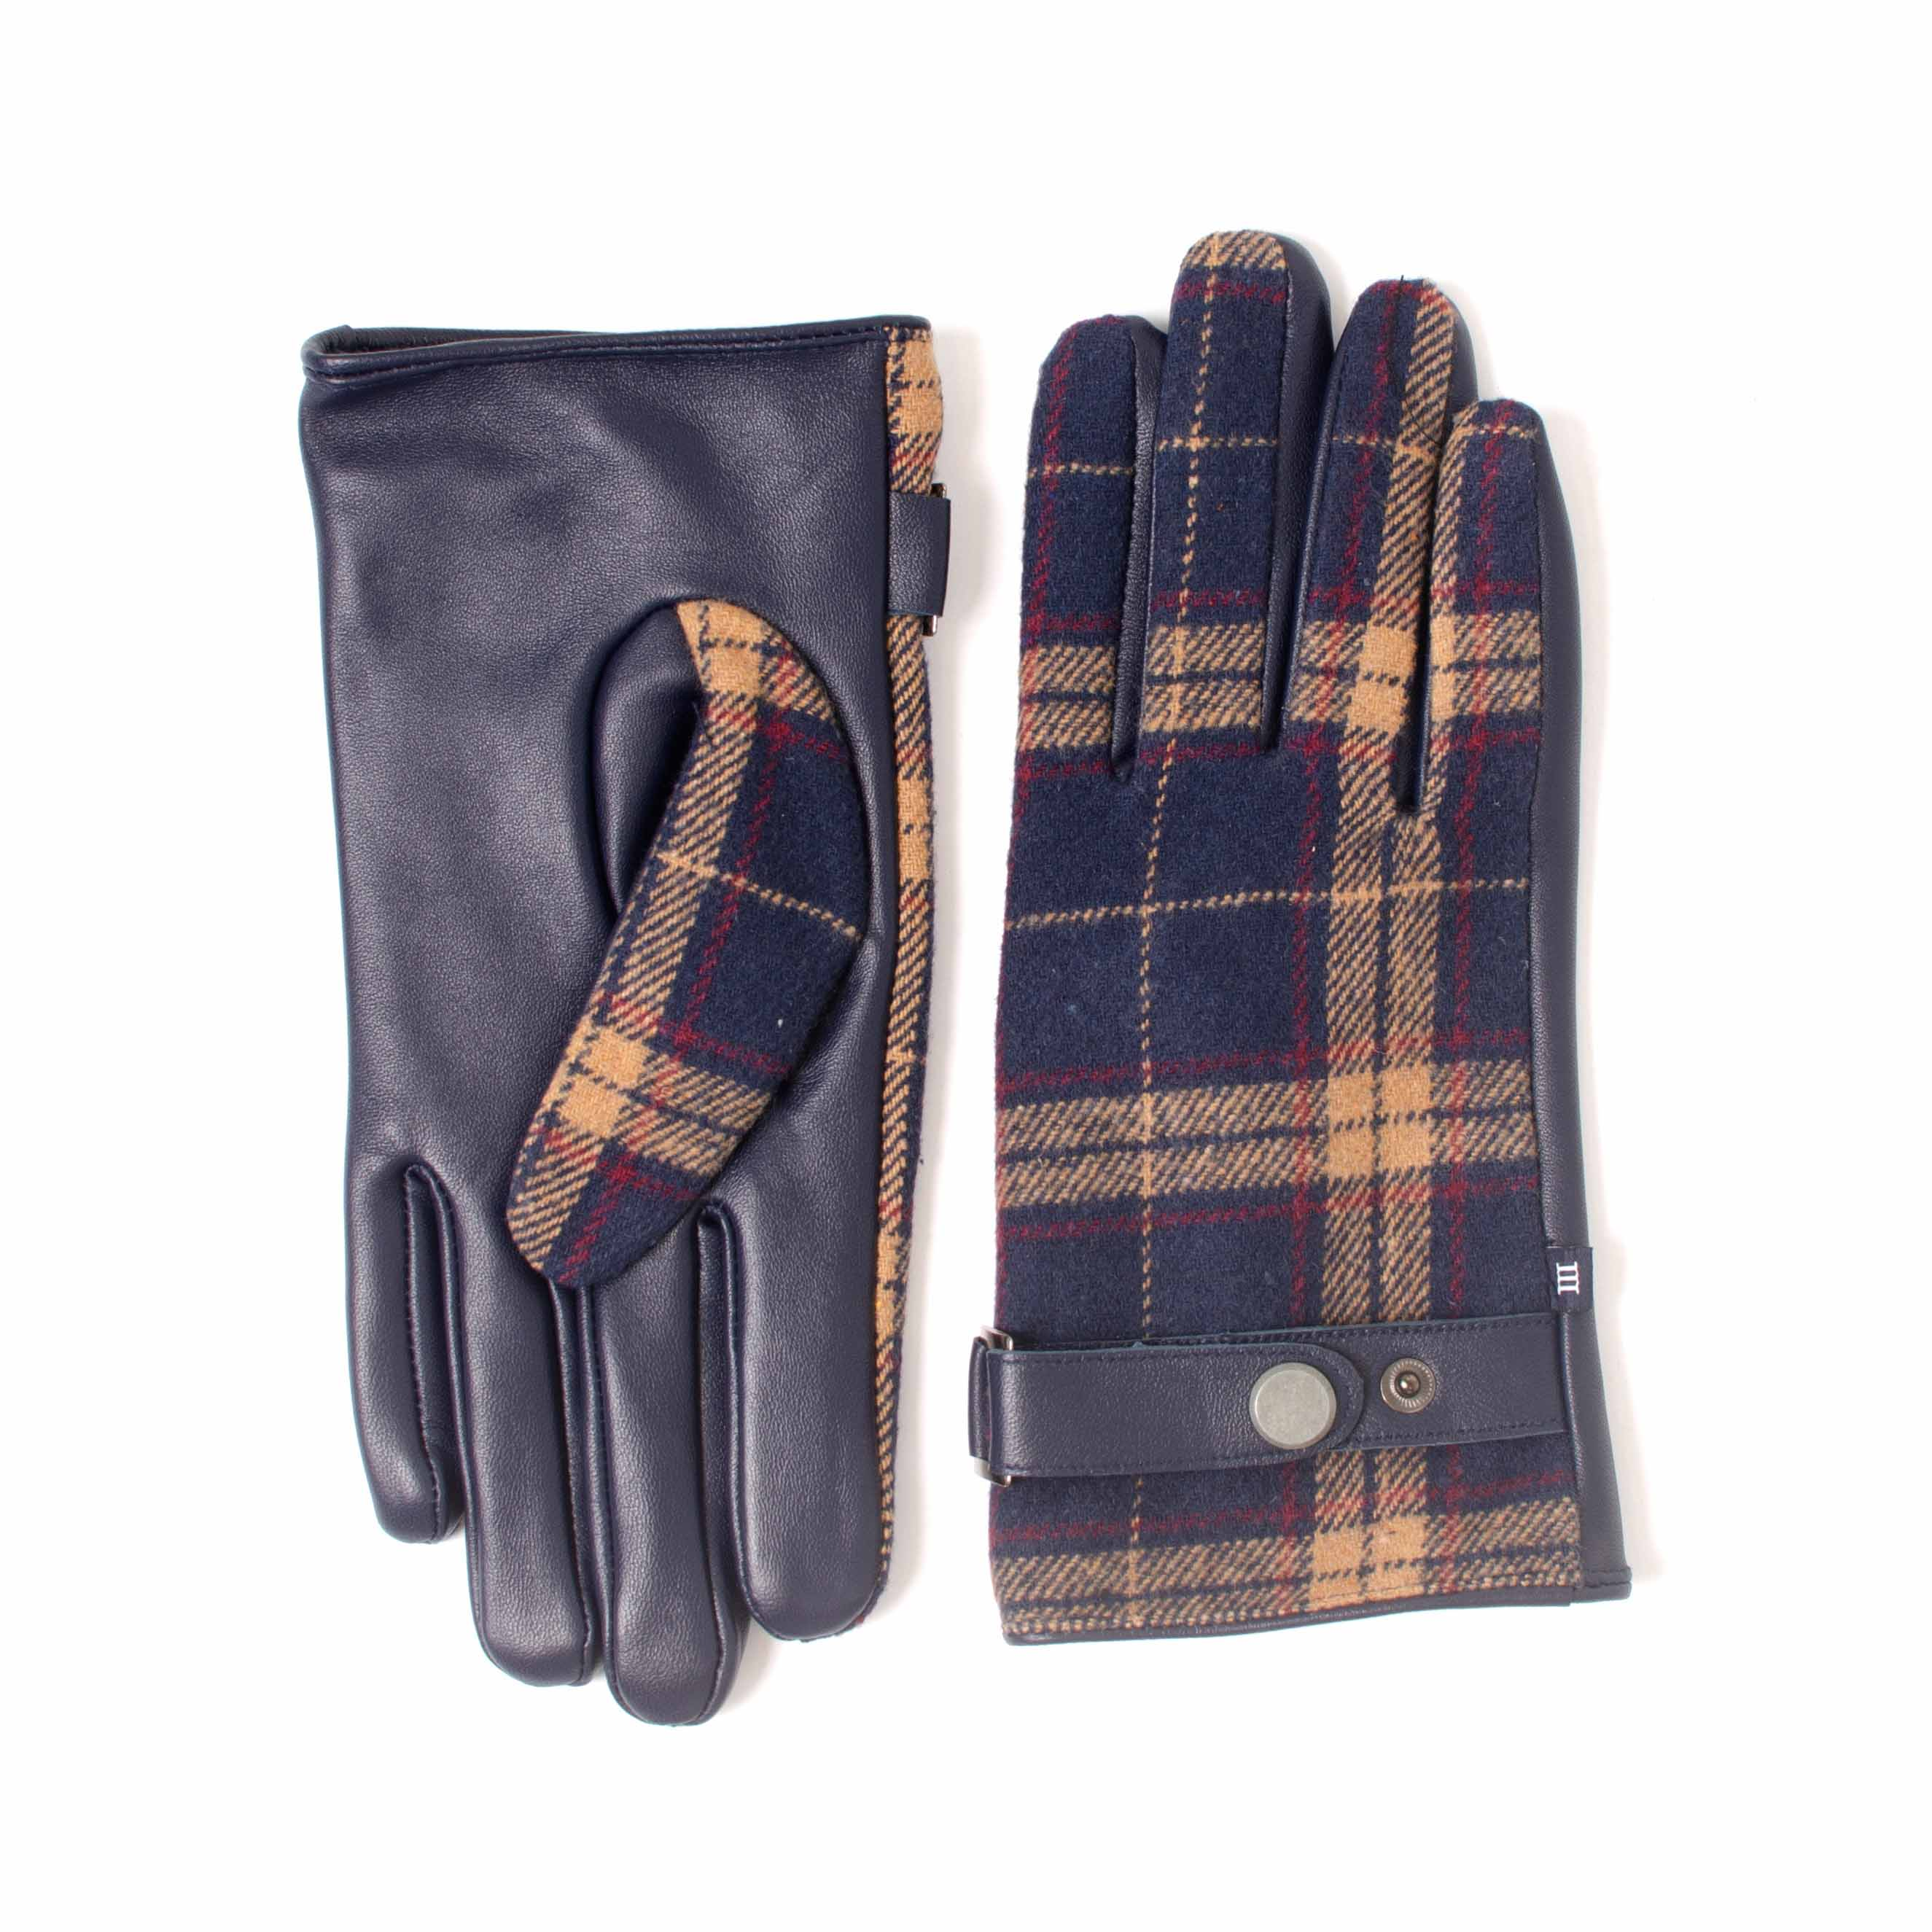 ELVYN | Navy leather and fabric glove with check pattern and beige accent color